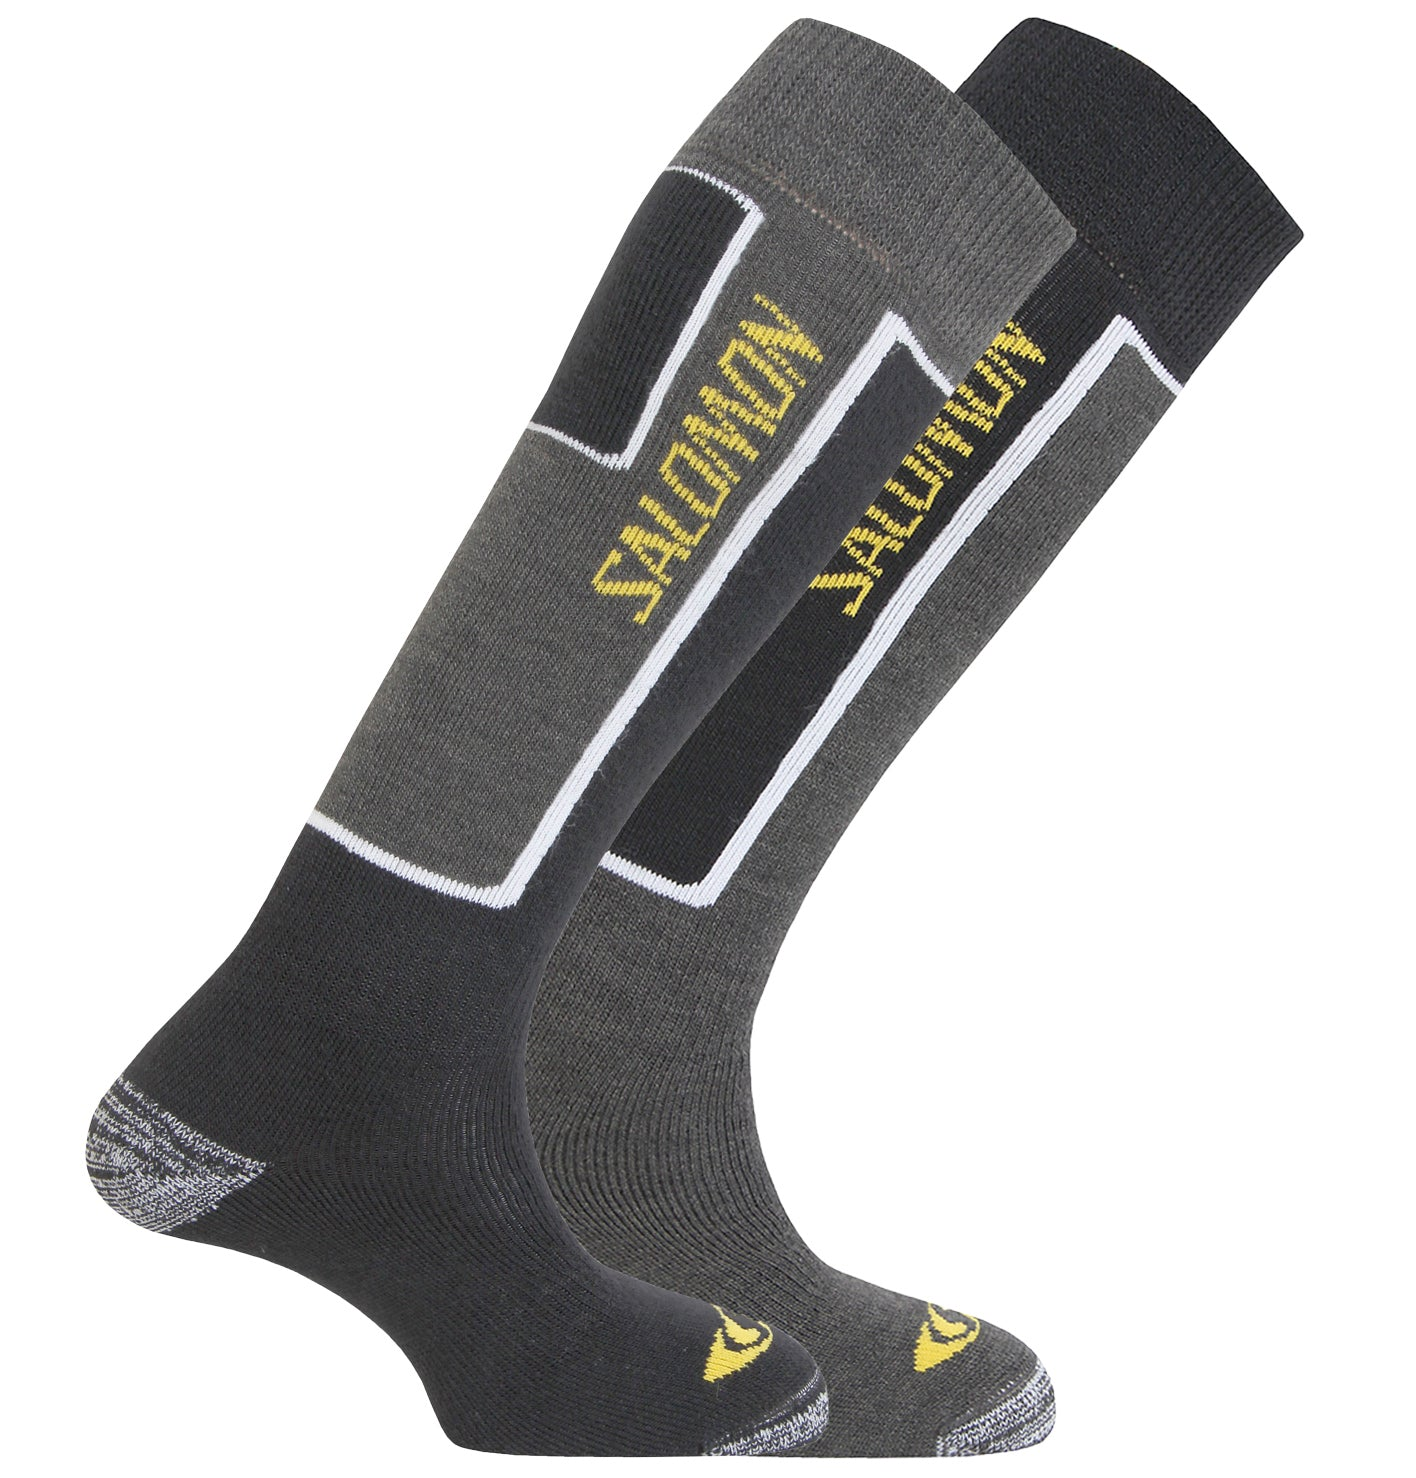 Salomon Elios 2pk Socks